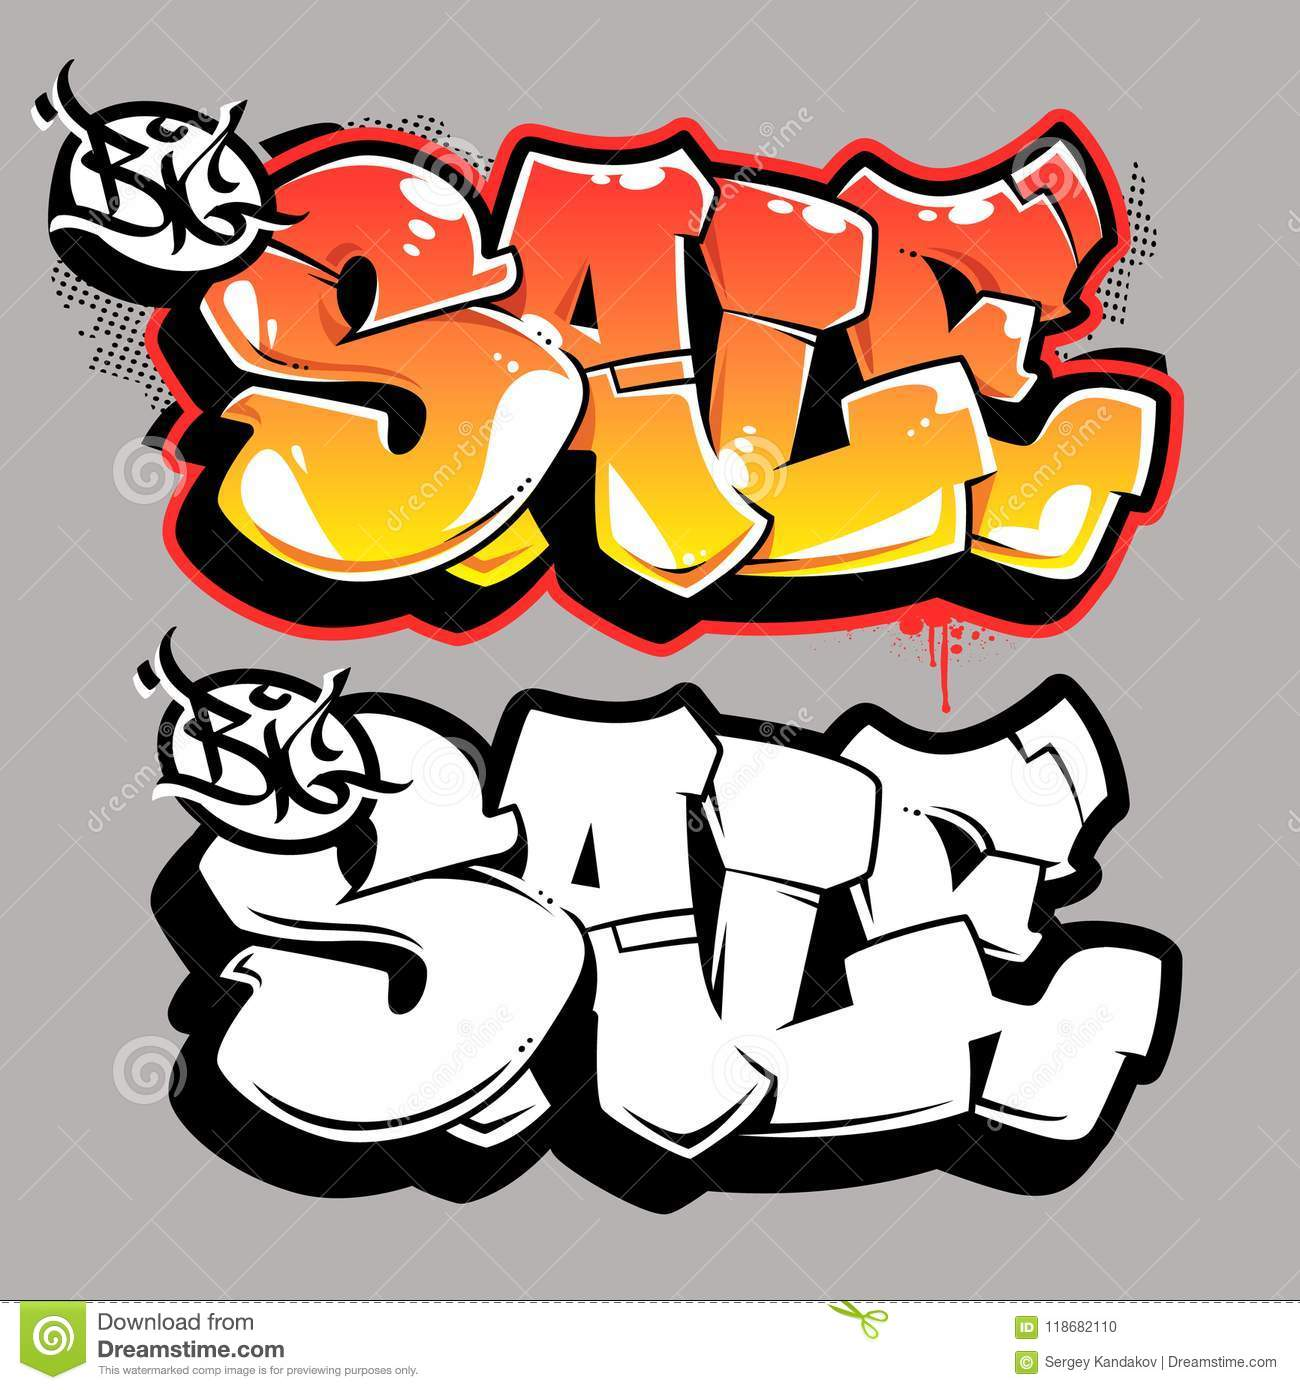 Download Big Sale Graffiti Vector Lettering Stock